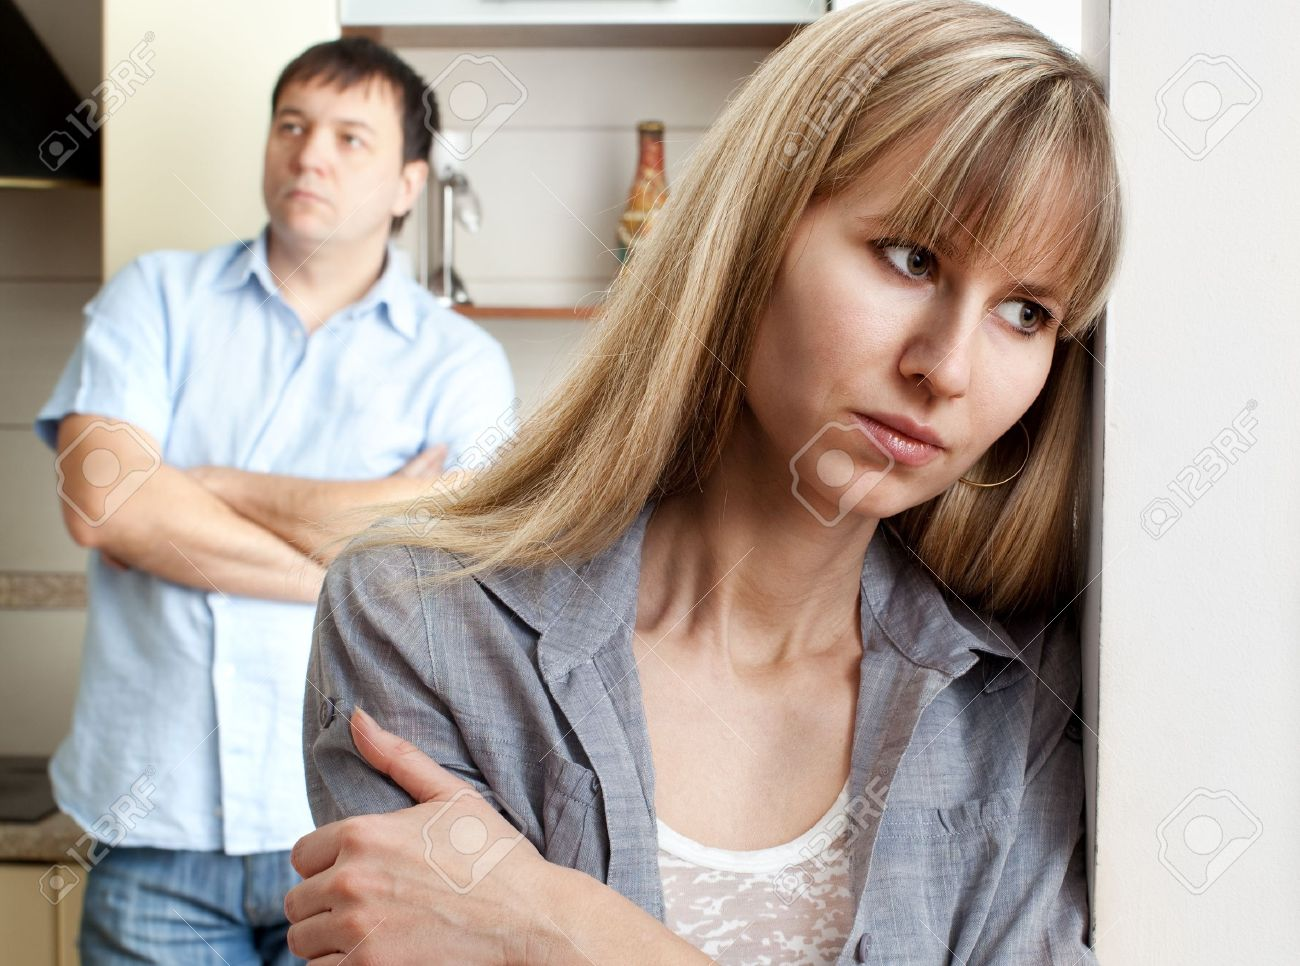 Conflict between man and woman at home - 12470591